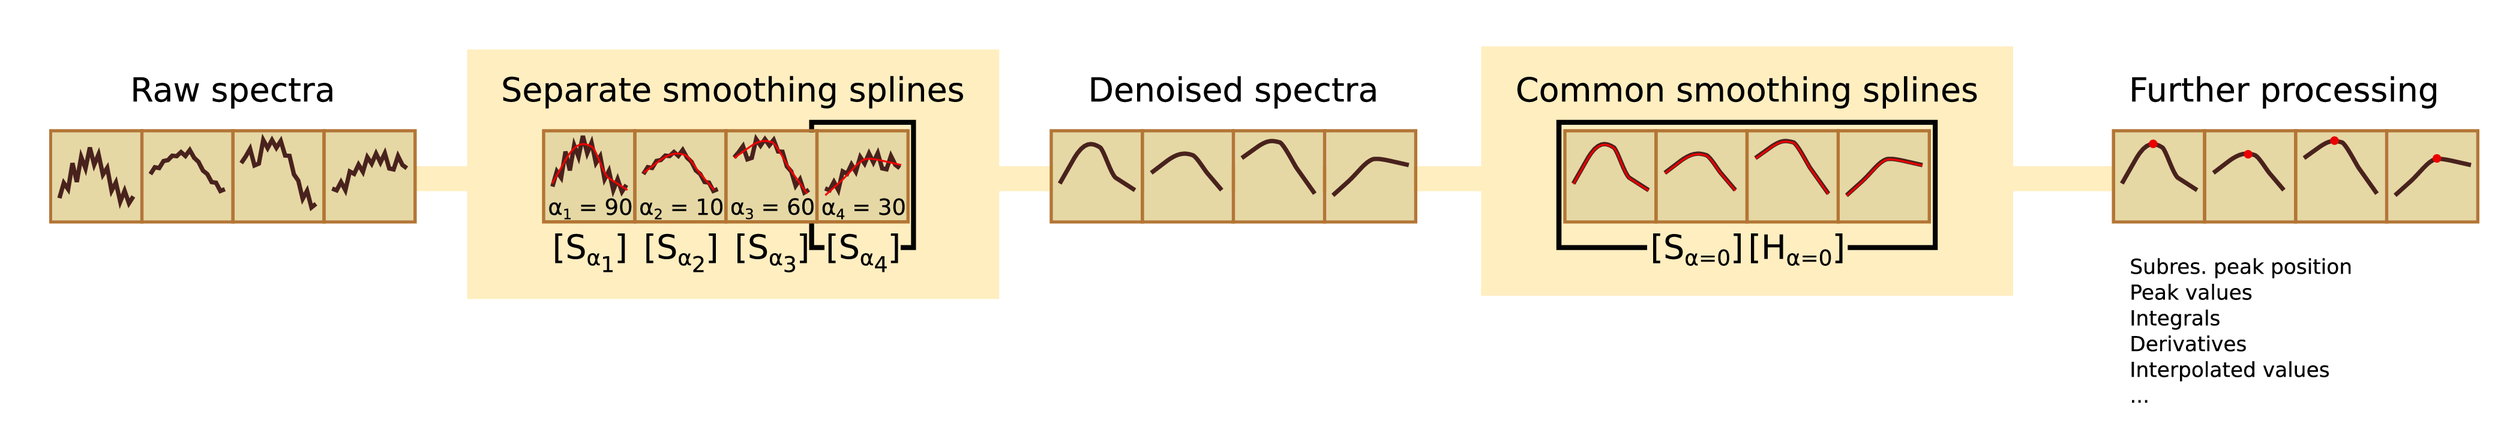 Application of smoothing splines for spectroscopic analysis in